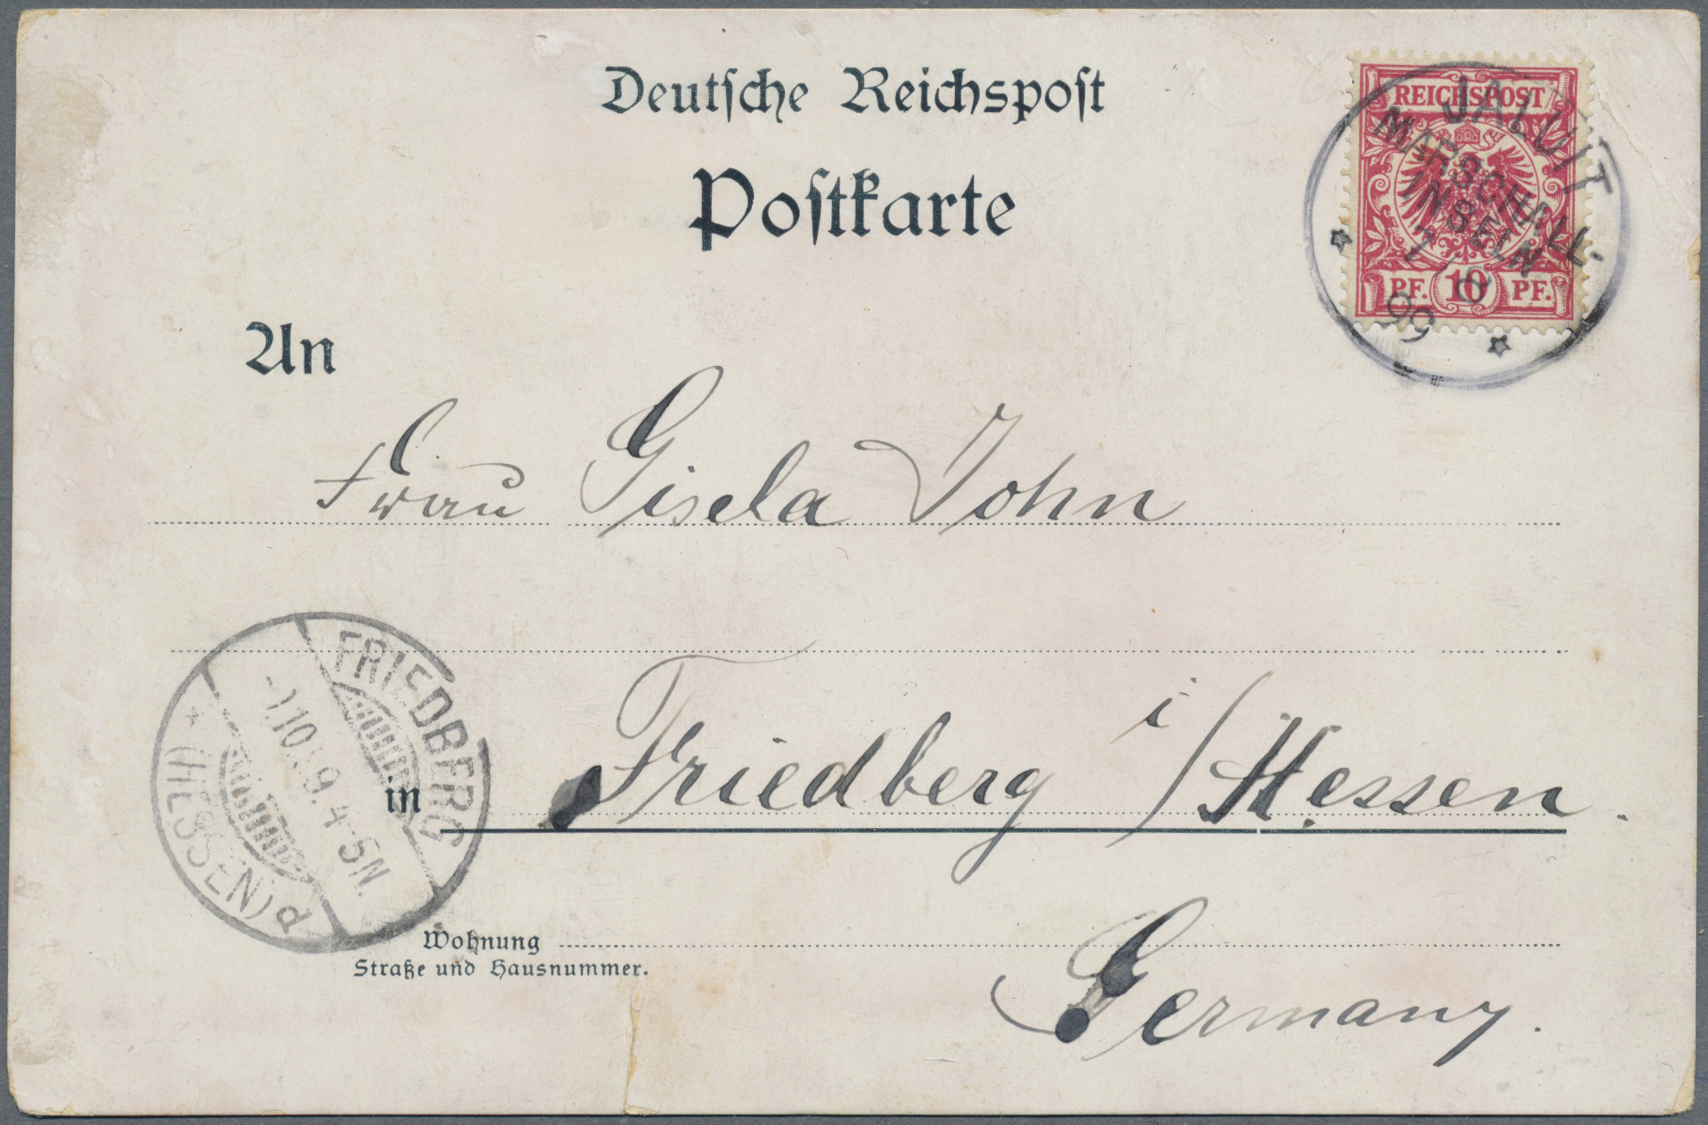 Lot 18759 - Deutsche Kolonien - Marshall-Inseln - Mitläufer  -  Auktionshaus Christoph Gärtner GmbH & Co. KG Auction #40 Germany, Picture Post Cards, Collections Overseas, Thematics